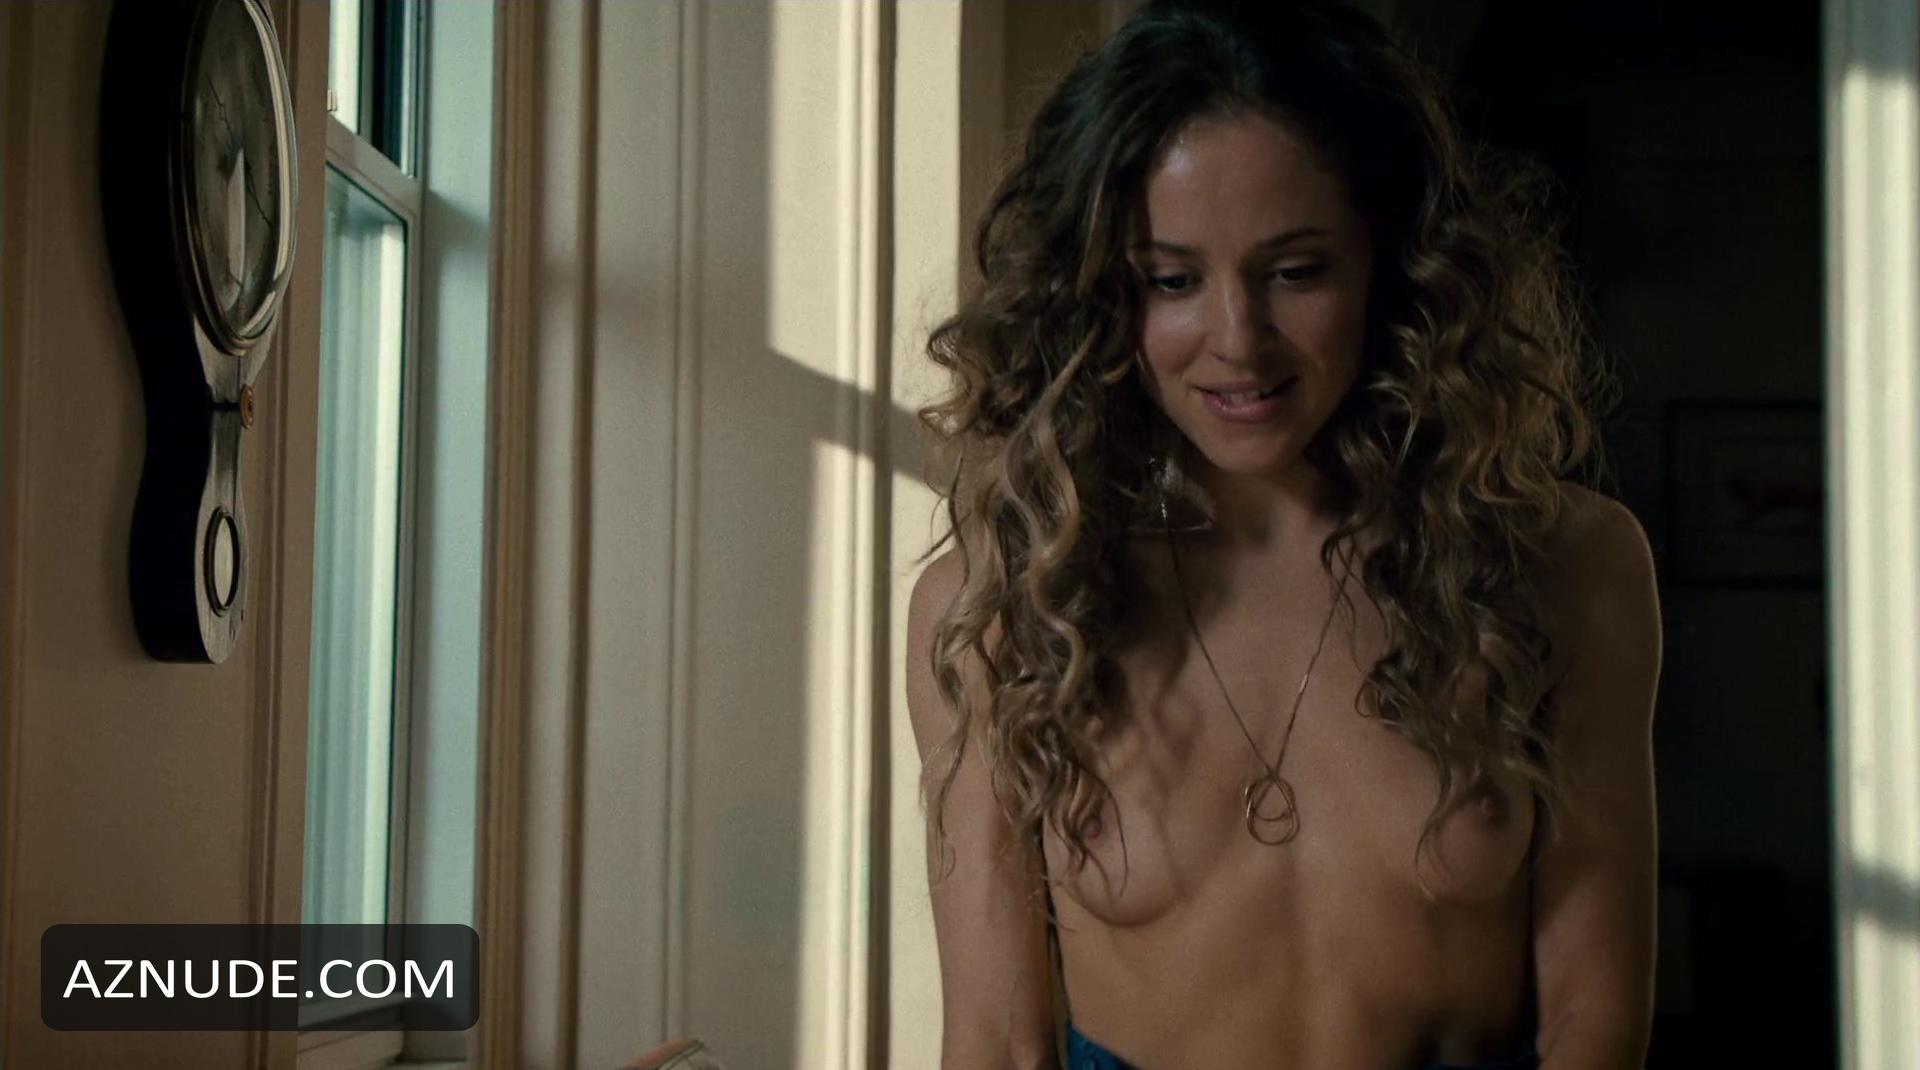 Watchin' However, margarita levieva nude